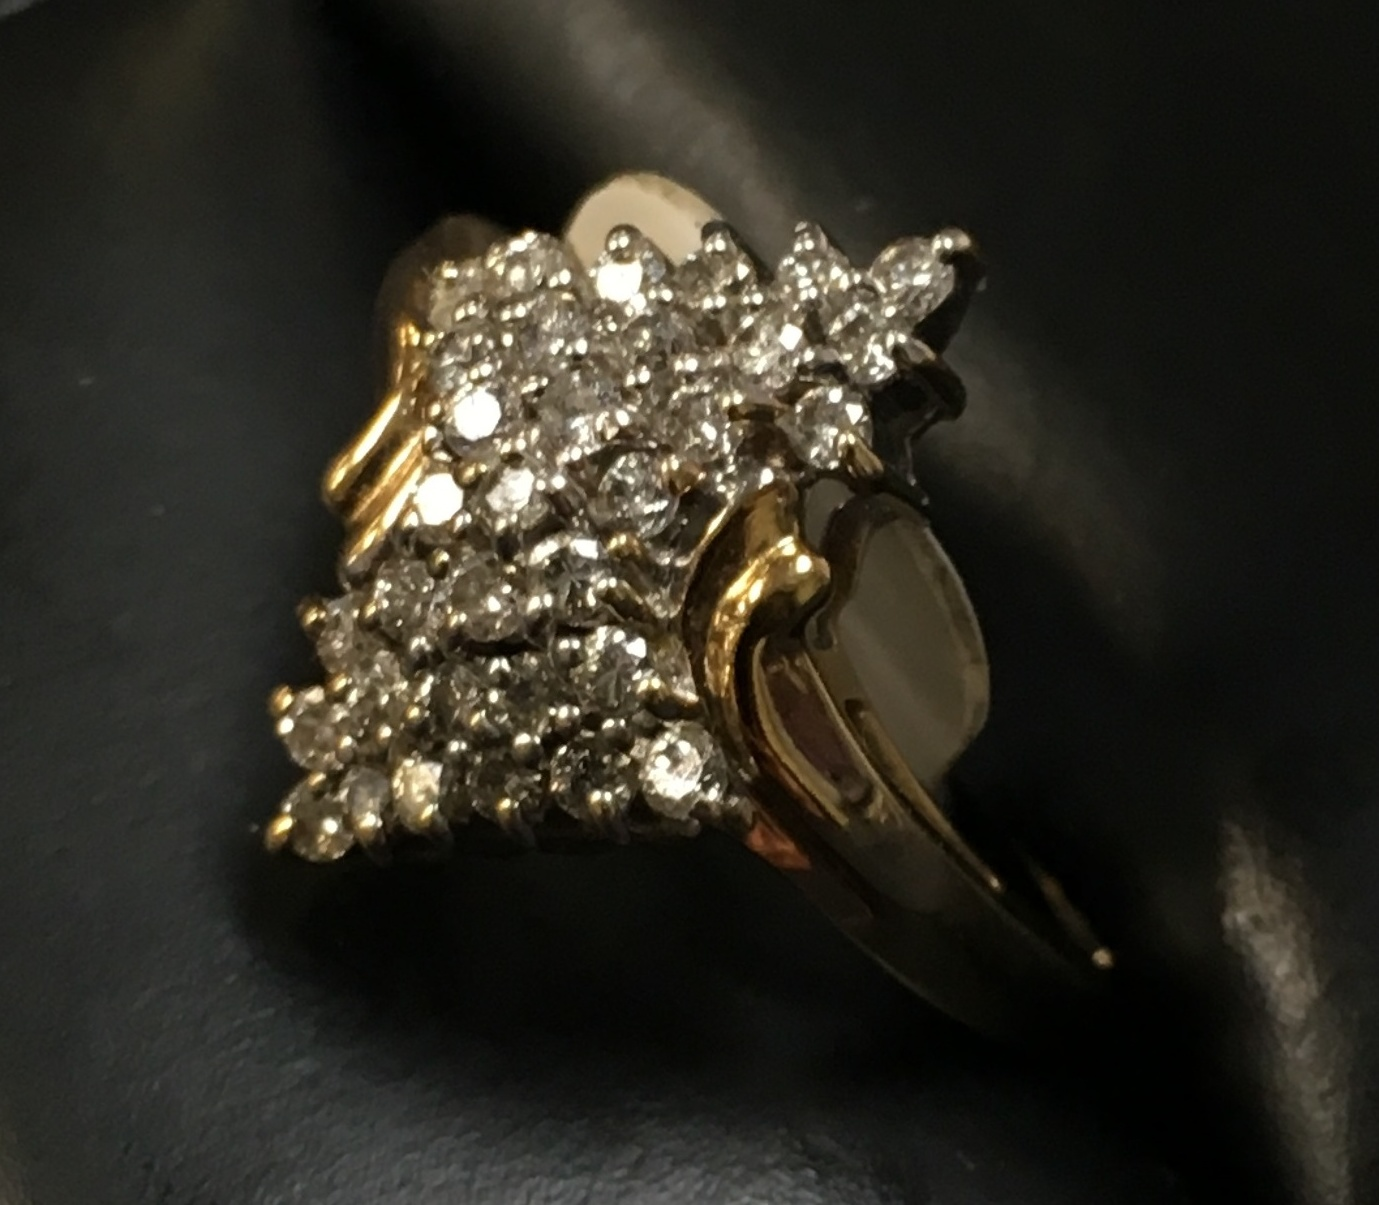 14KT YELLOW GOLD CUSTER RING WITH 33 DIAMOND CHIPS. SIZE: 7